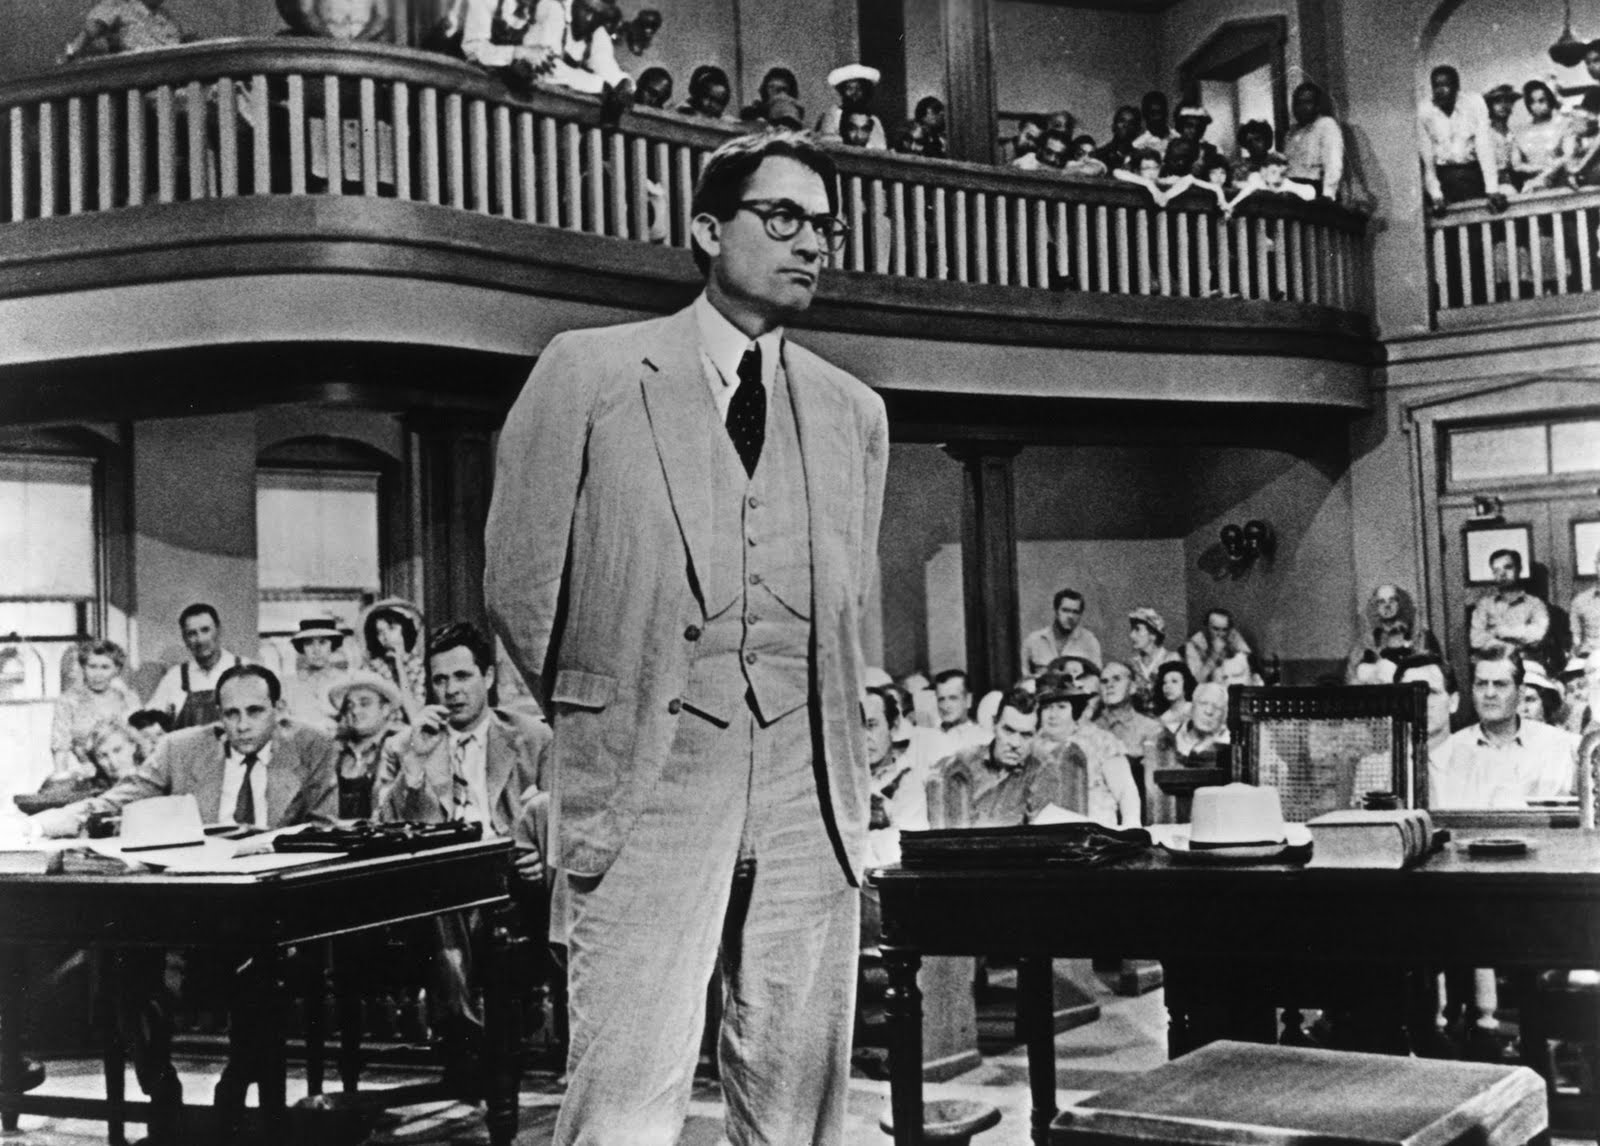 To kill a mockingbird goes for something in the middle